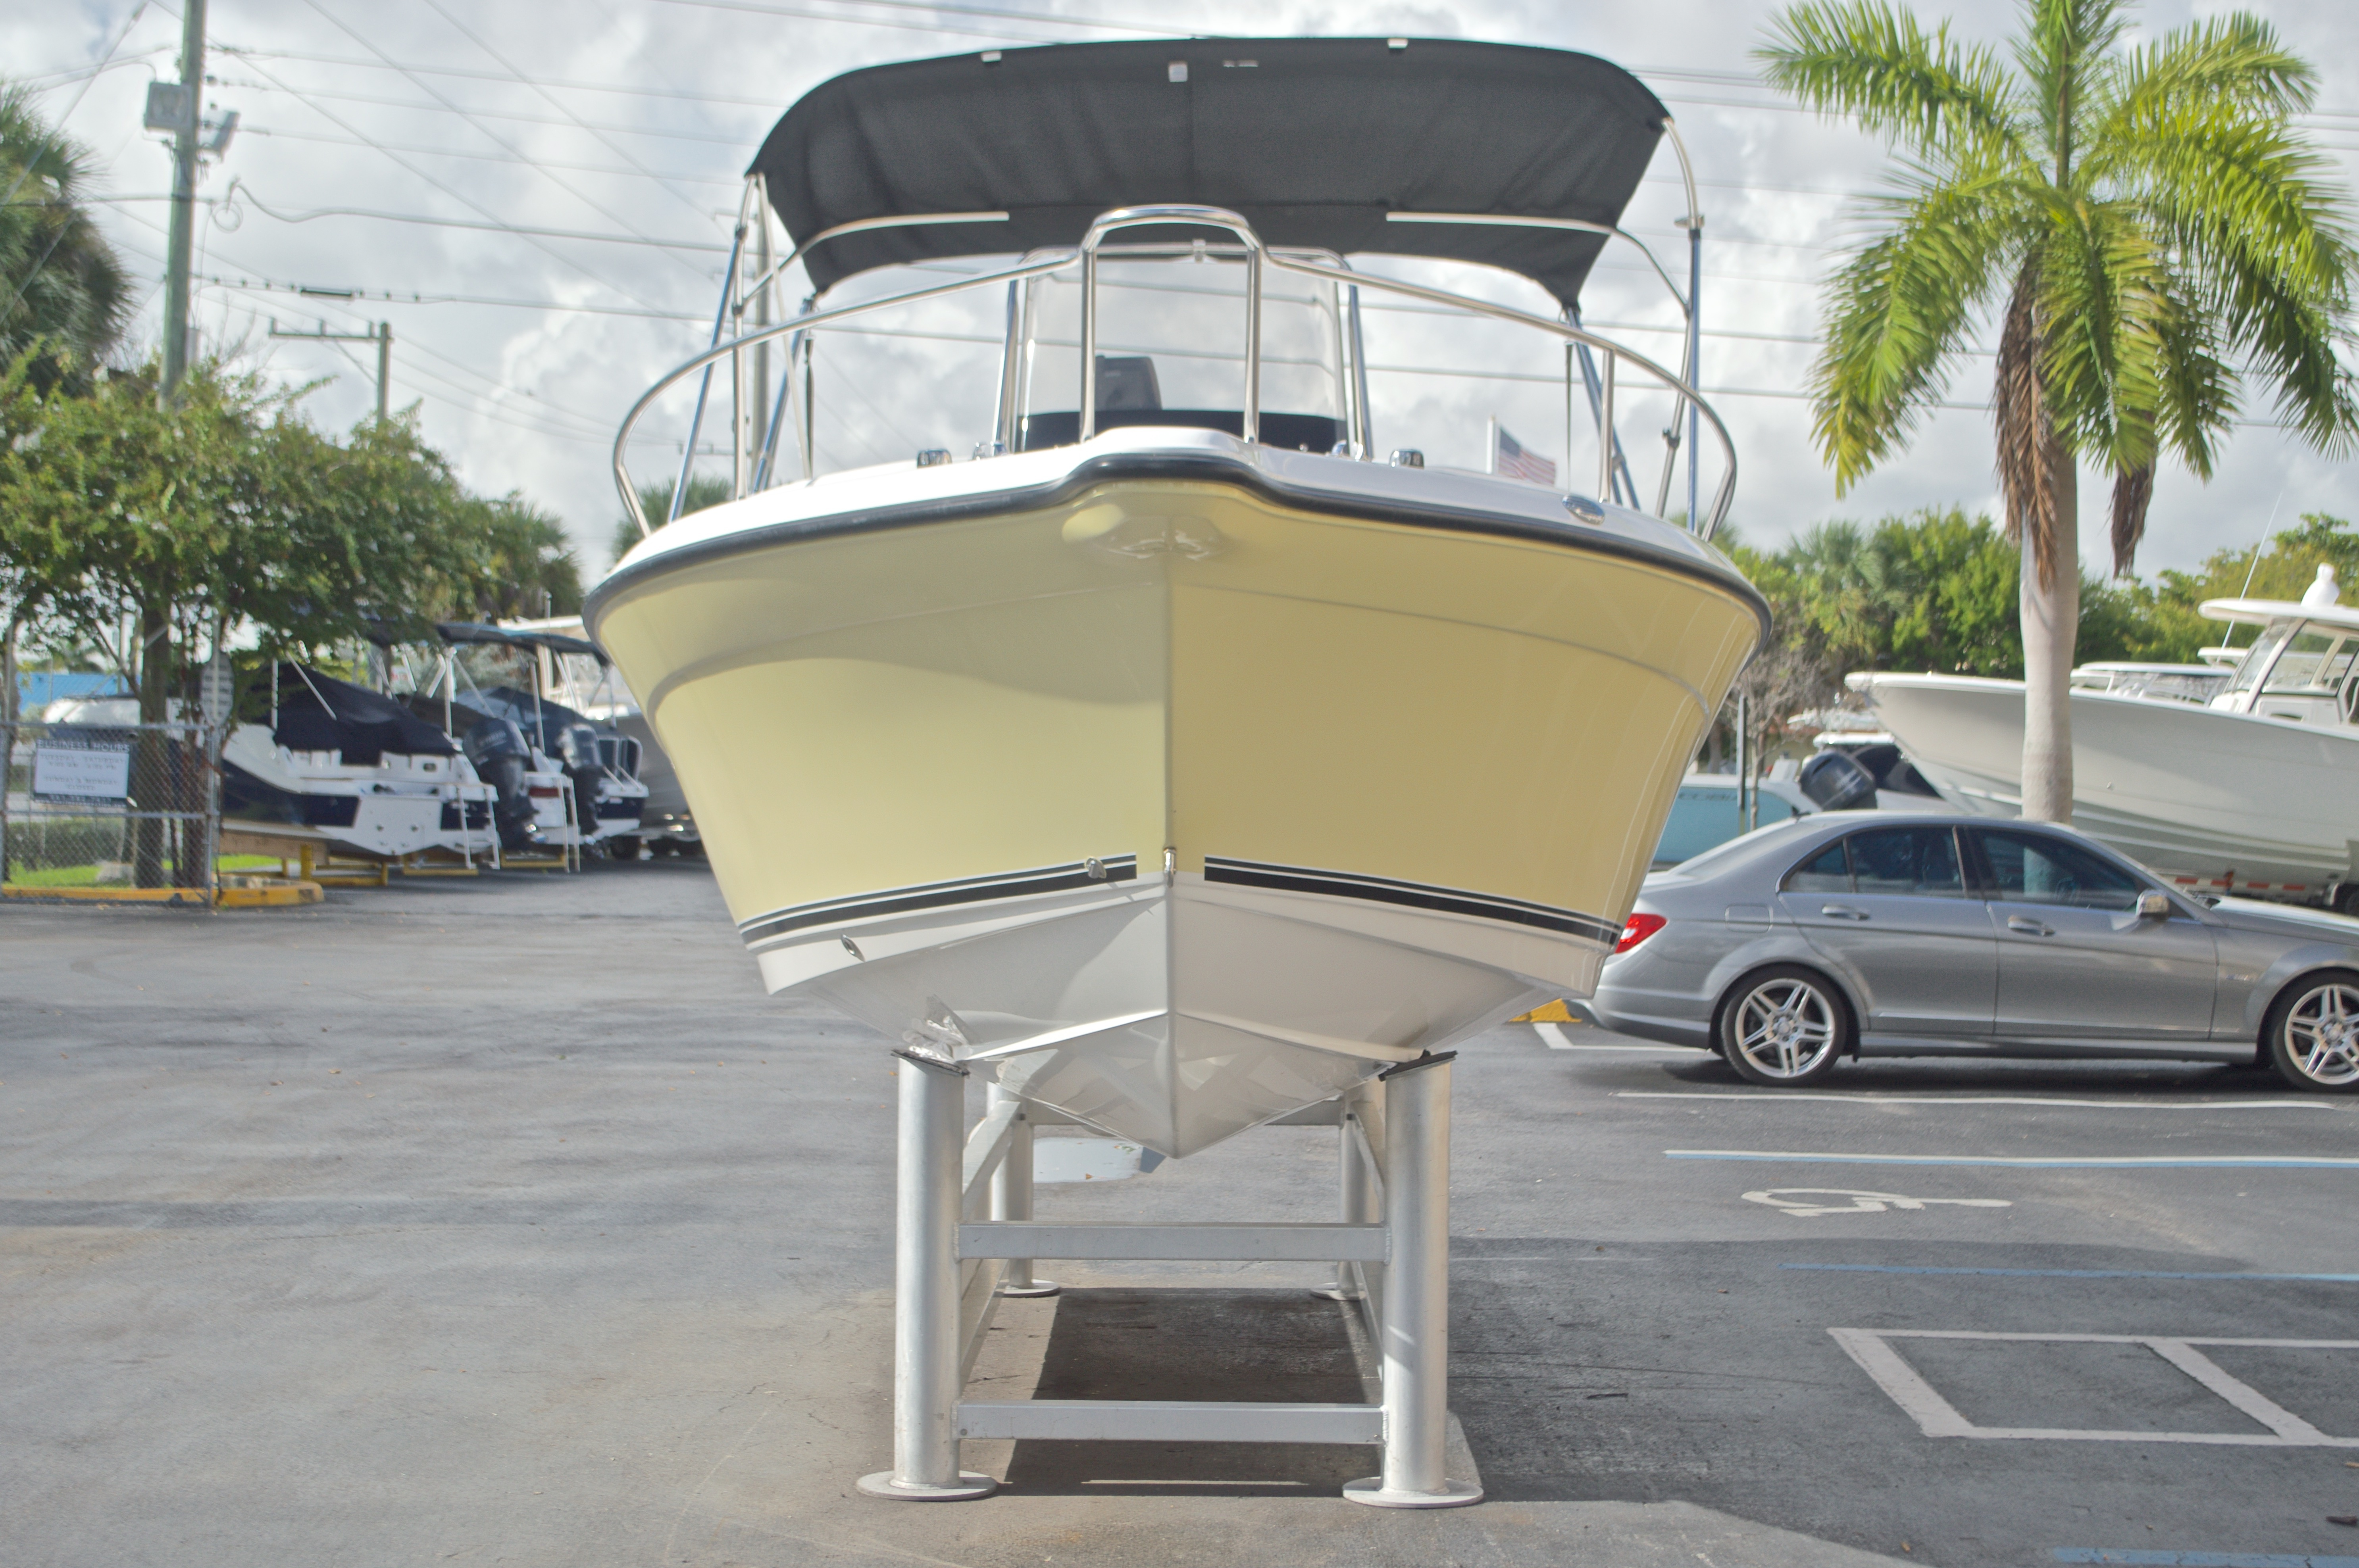 Thumbnail 2 for Used 2007 Century 2001 Center Console boat for sale in West Palm Beach, FL